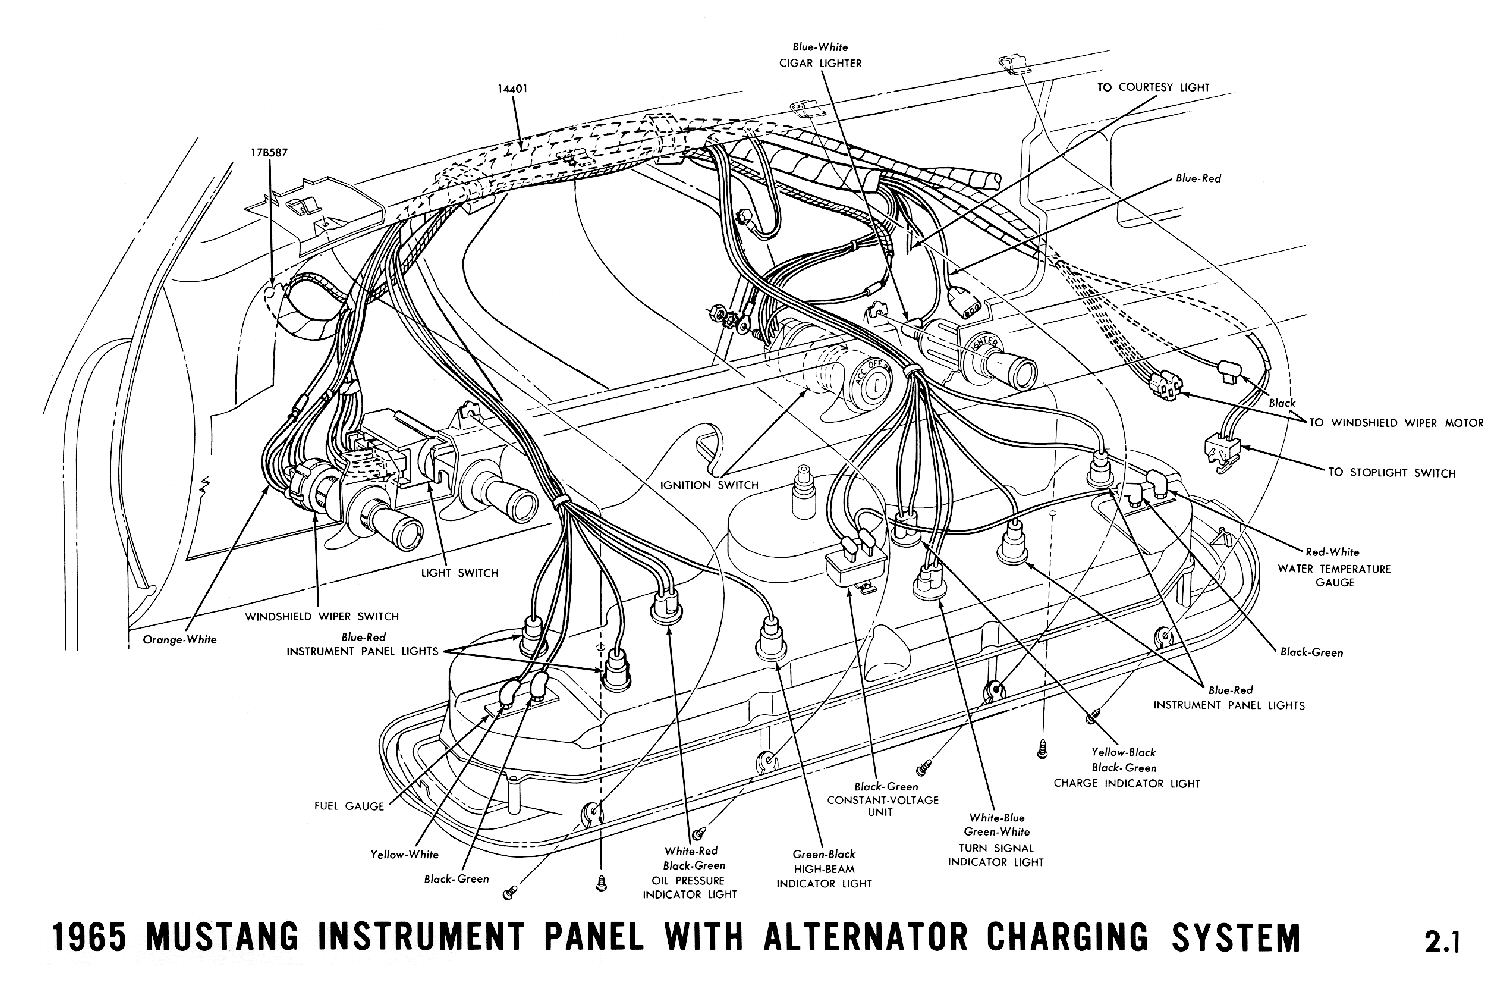 1965a 1965 mustang wiring diagrams average joe restoration highway 22 wiring diagram at bayanpartner.co